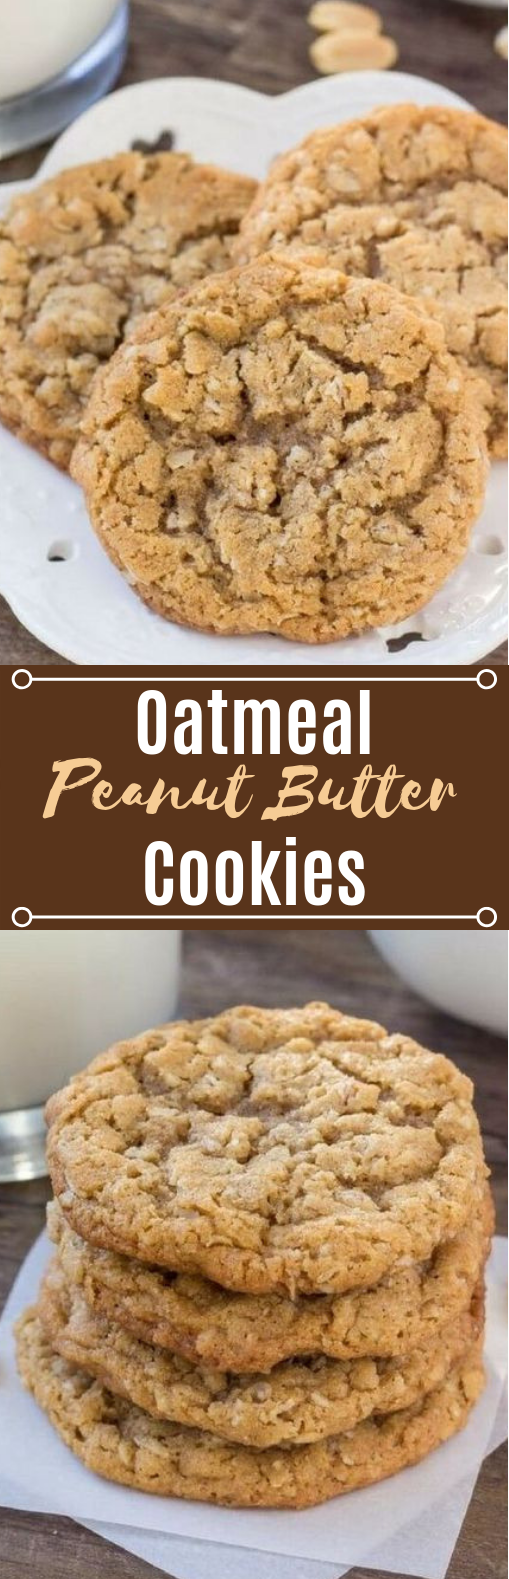 Peanut Butter Oatmeal Cookies #desserts #cookies